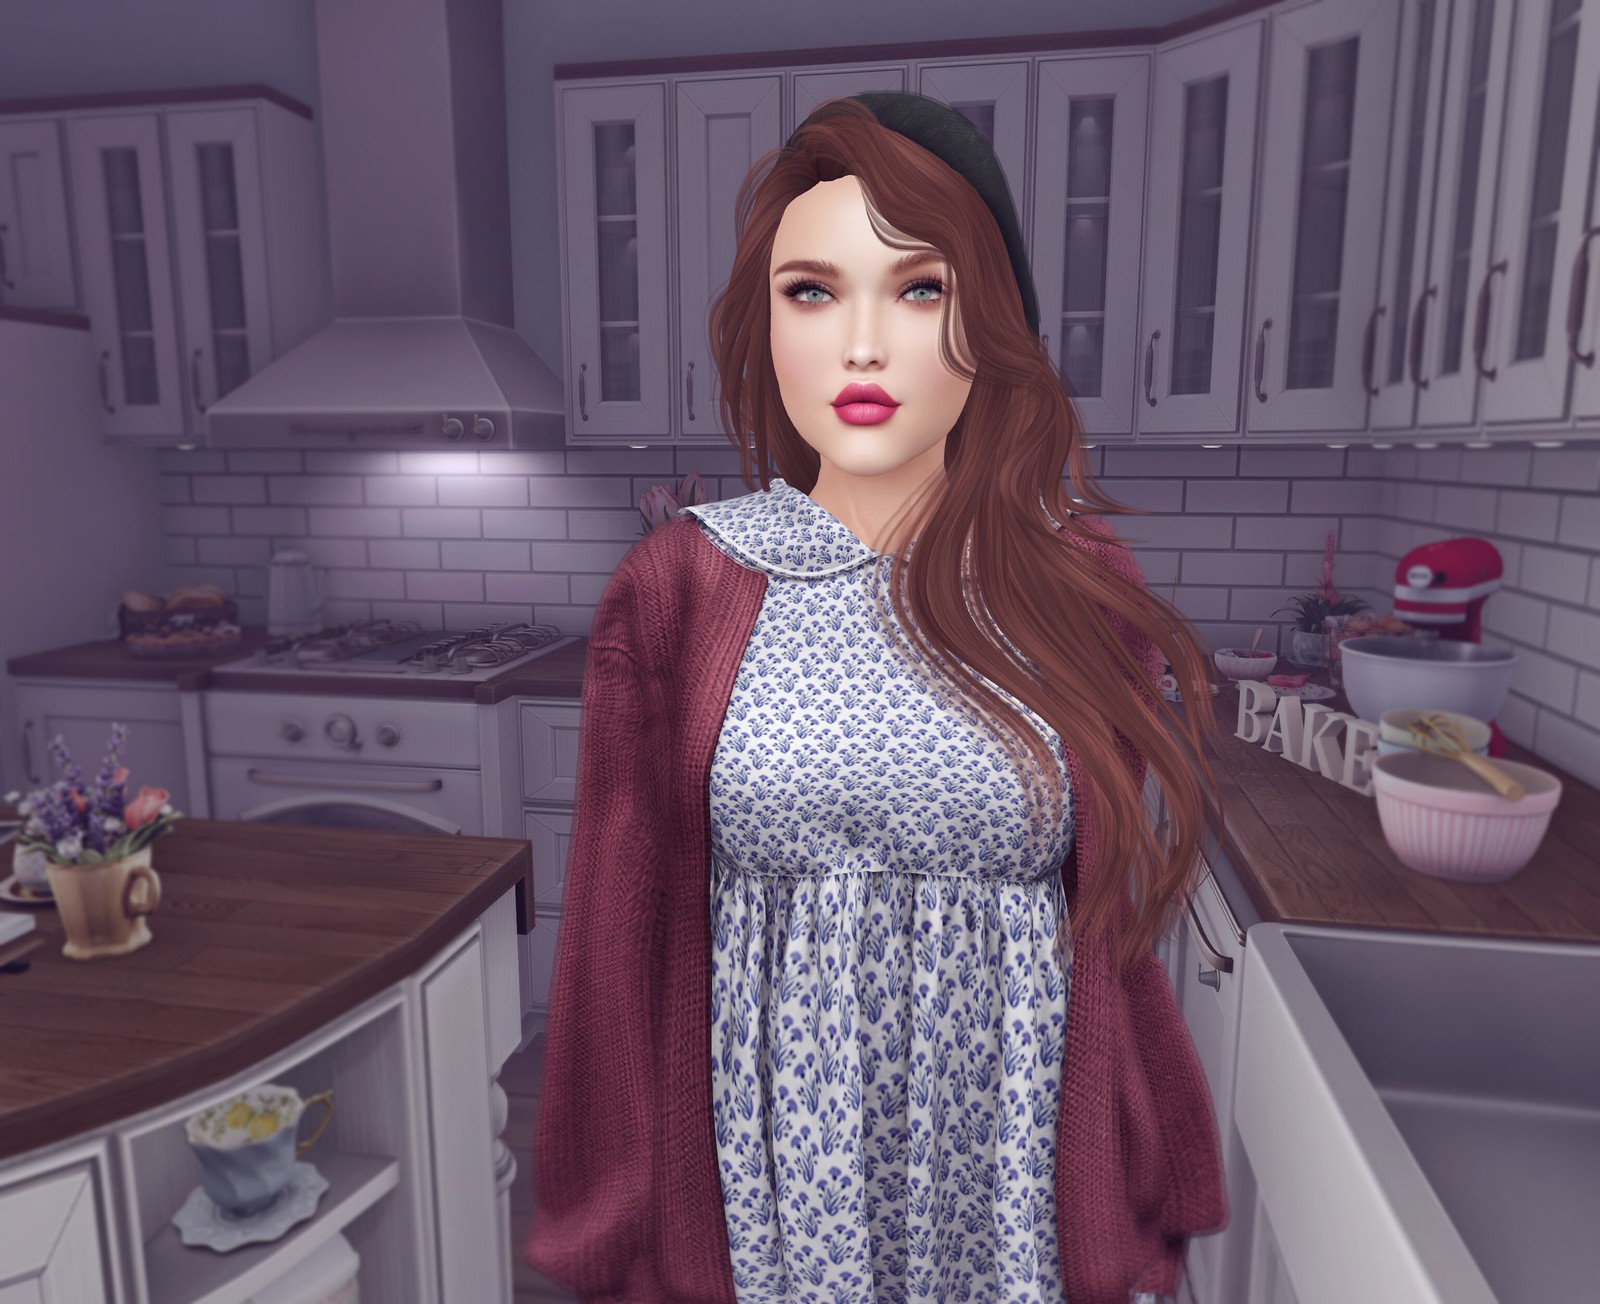 My New Kitchen - JuicyBomb Second Life Fashion Blog